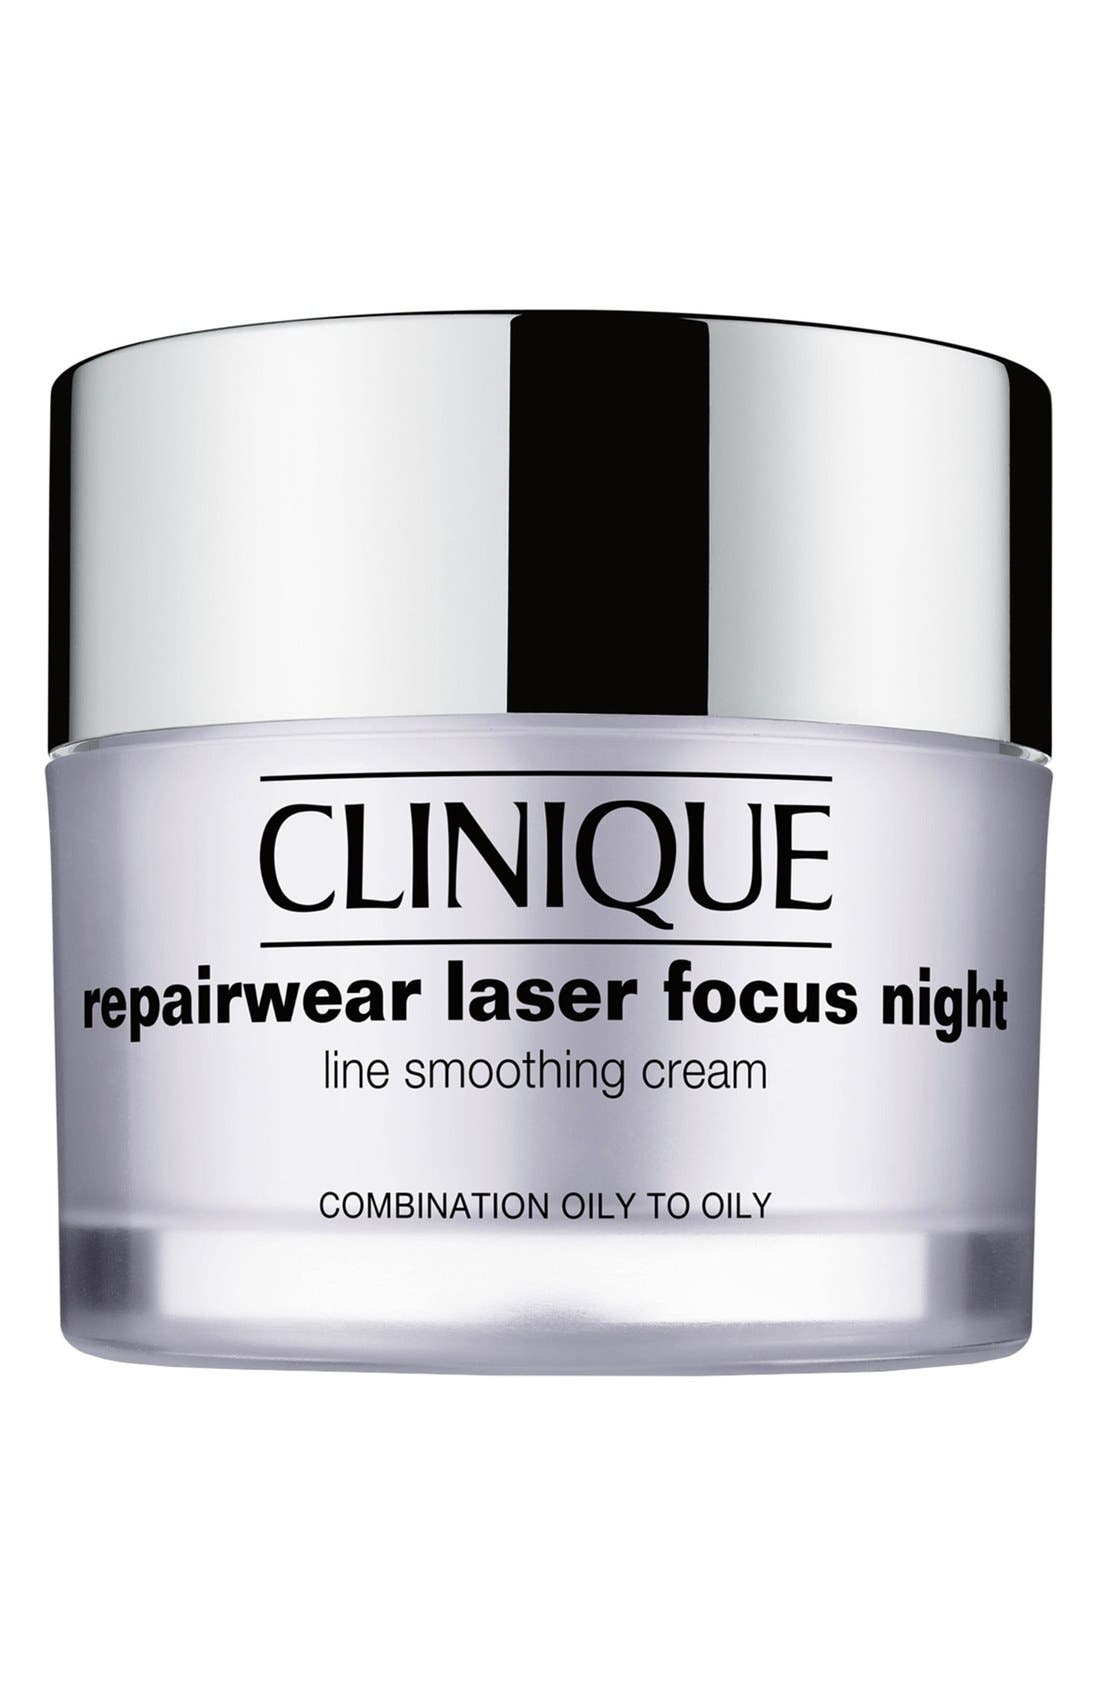 Repairwear Laser Focus Night Line Smoothing Cream for Combination Oily to Oily Skin,                         Main,                         color, COMBINATION OILY TO OILY